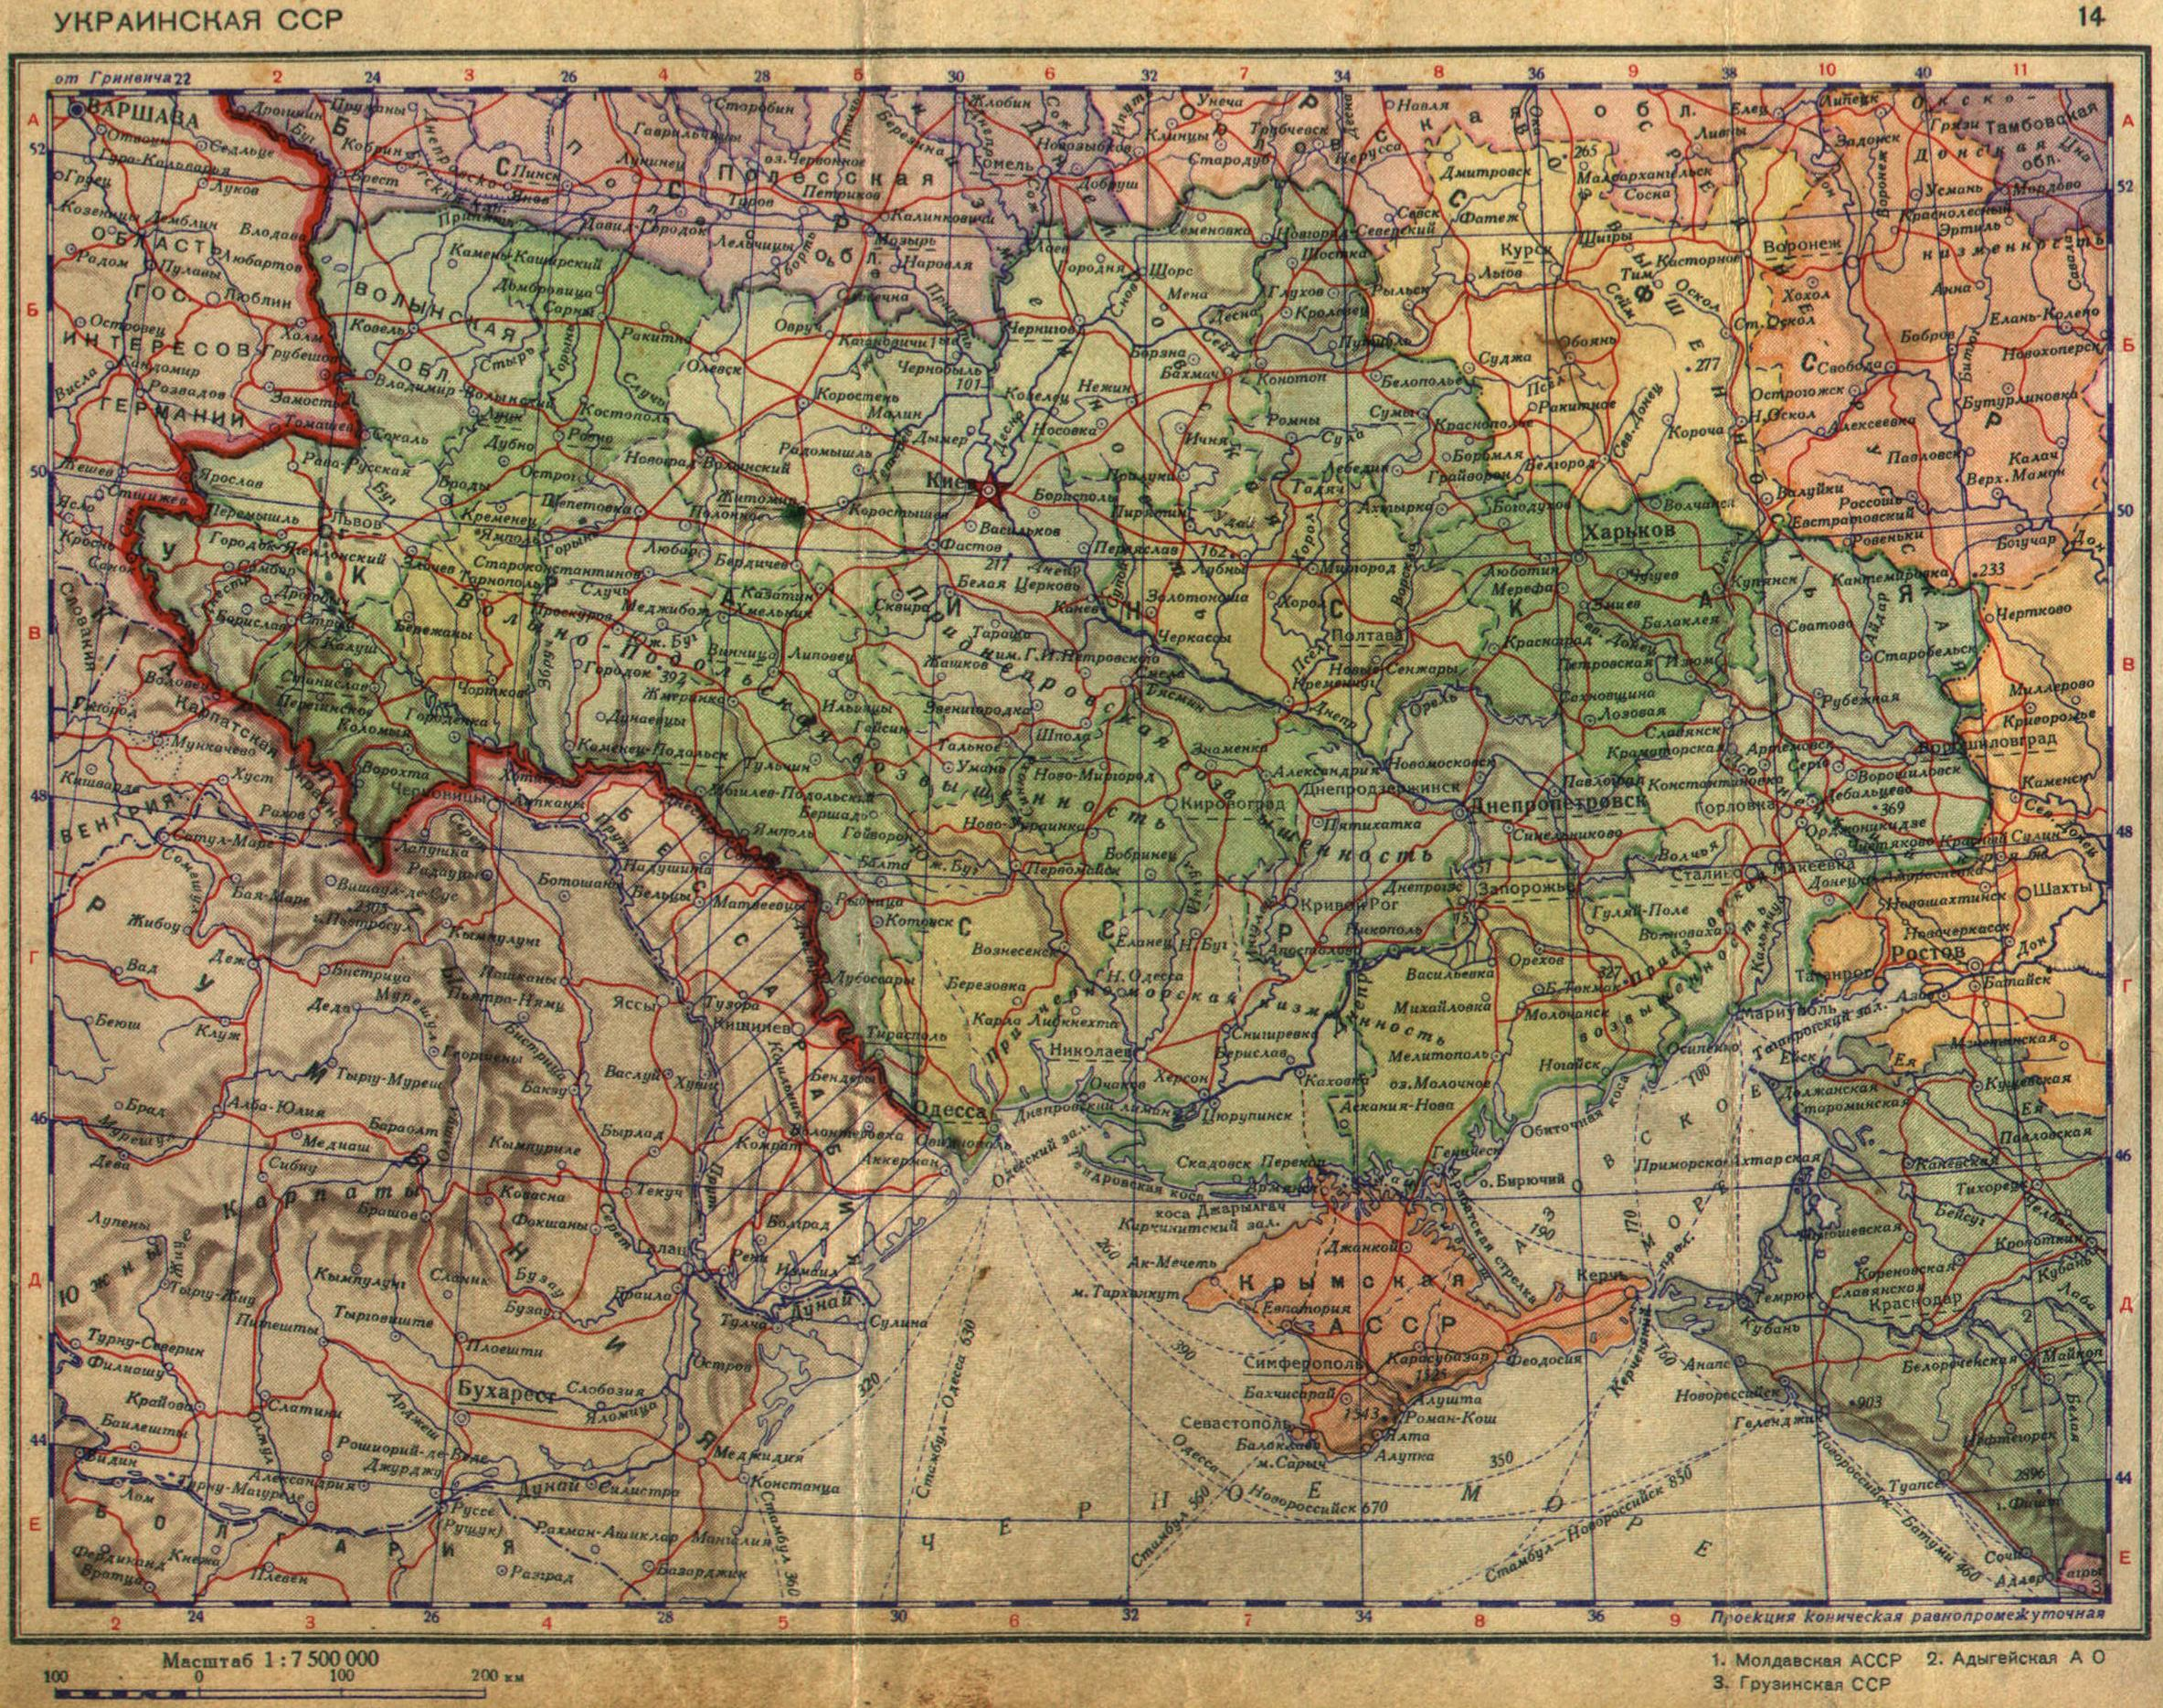 Historical Maps of Ukraine     Ukrainian SSR at the Beginning of 1940